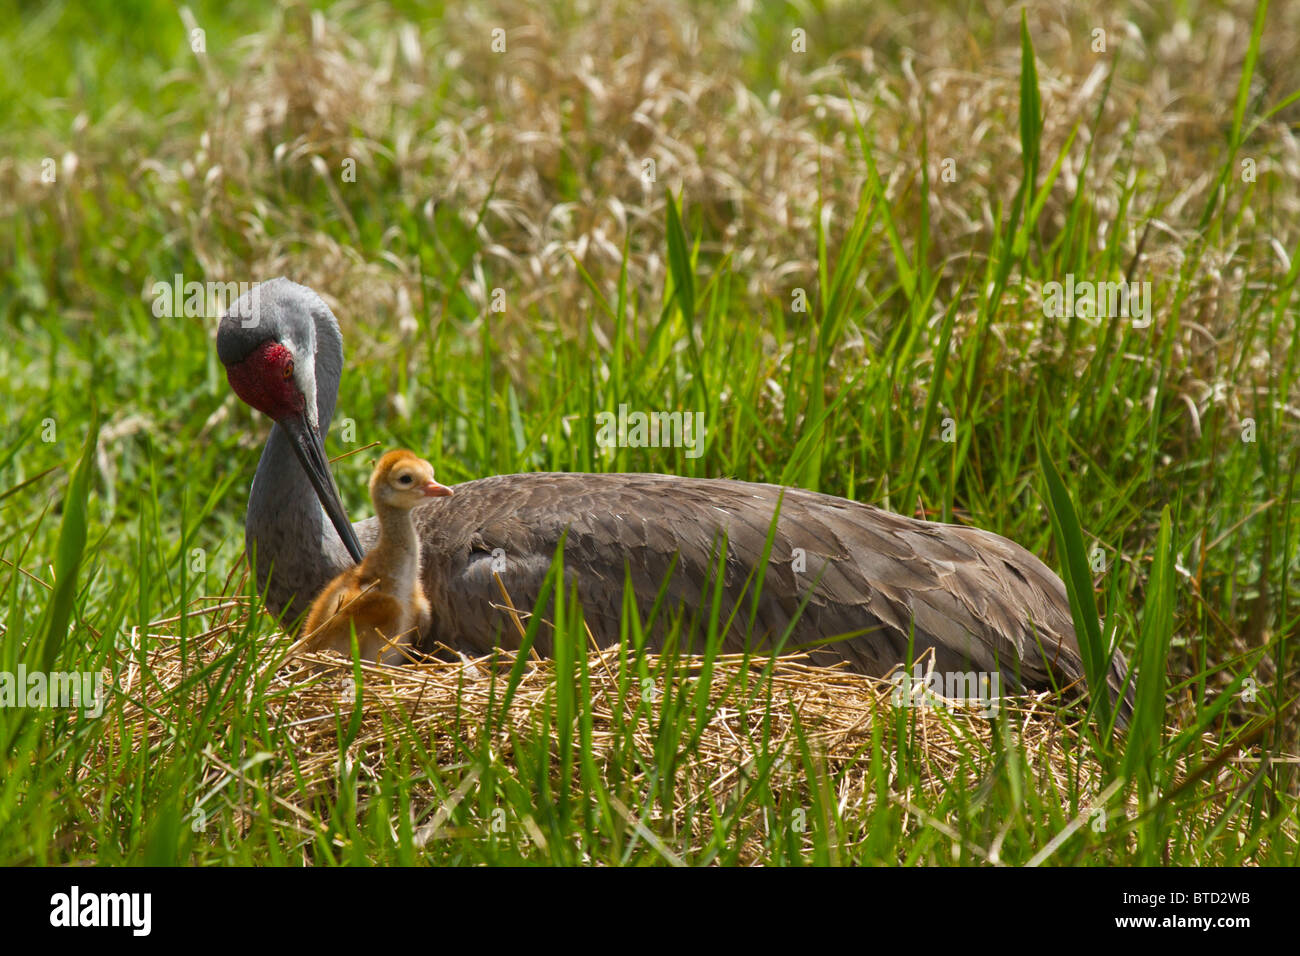 Sandhill crane on a nest with a hatchling in Florida - Stock Image